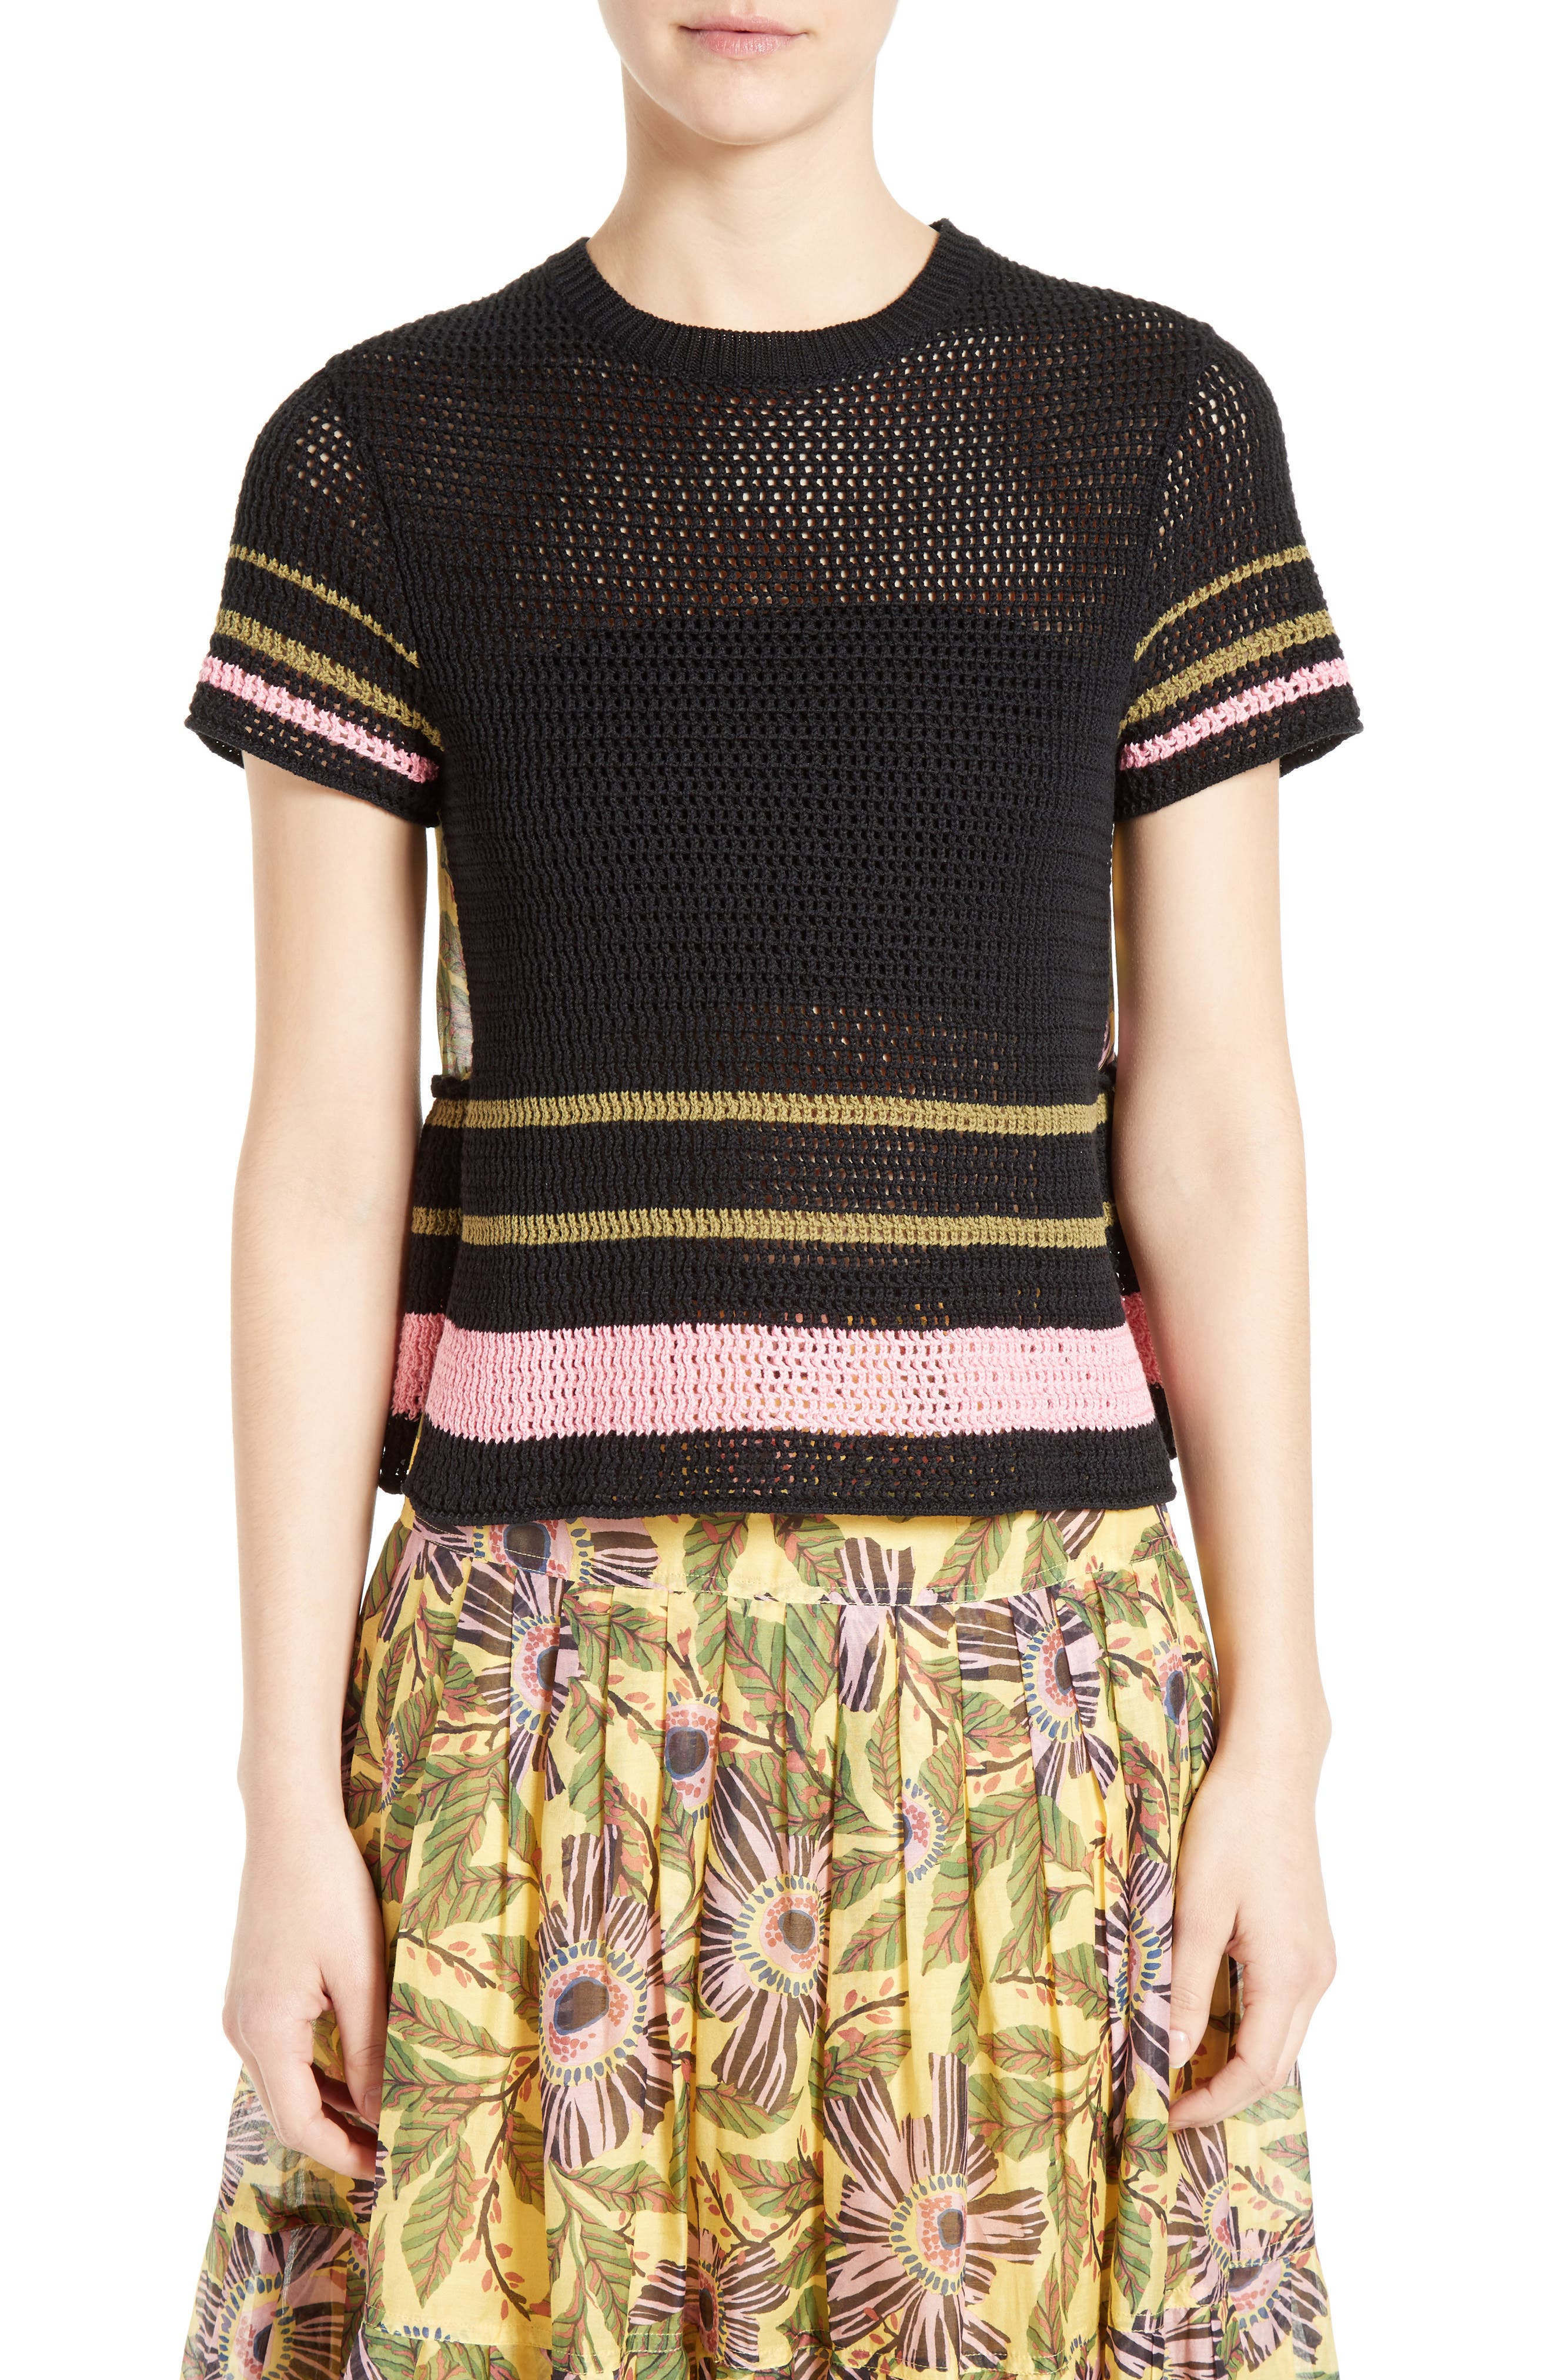 RED VALENTINO Floral Print Back Crochet Sweater